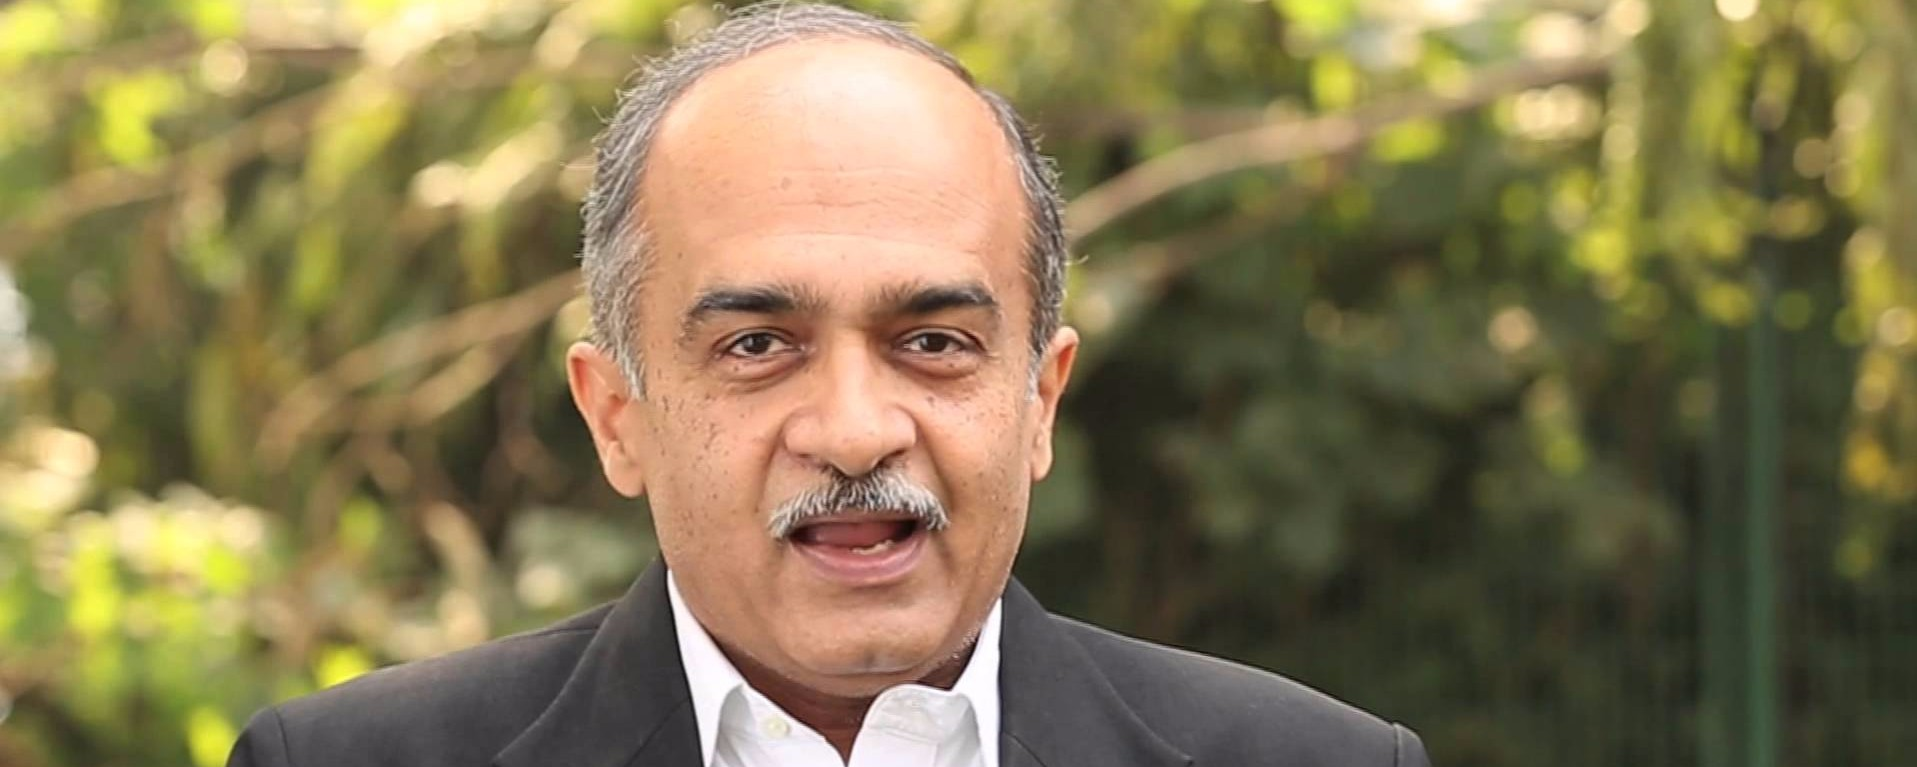 prashant bhushan youtube